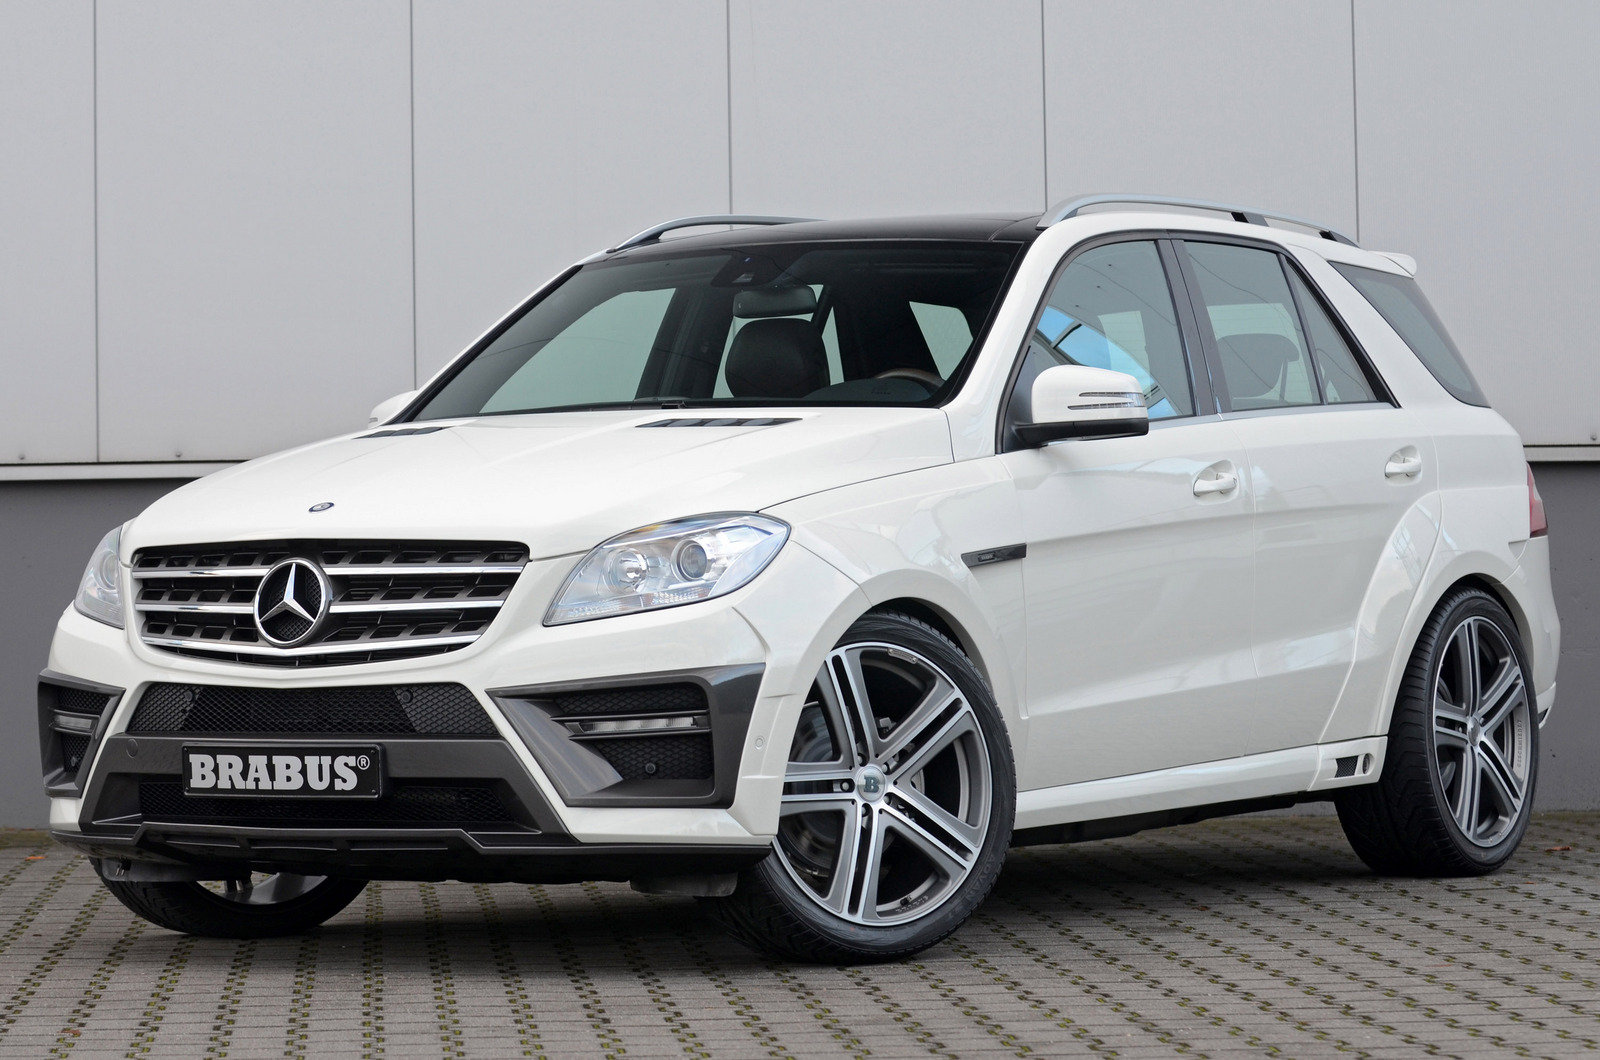 2012 Mercedes ML63 AMG Widestar By Brabus Review  Top Speed